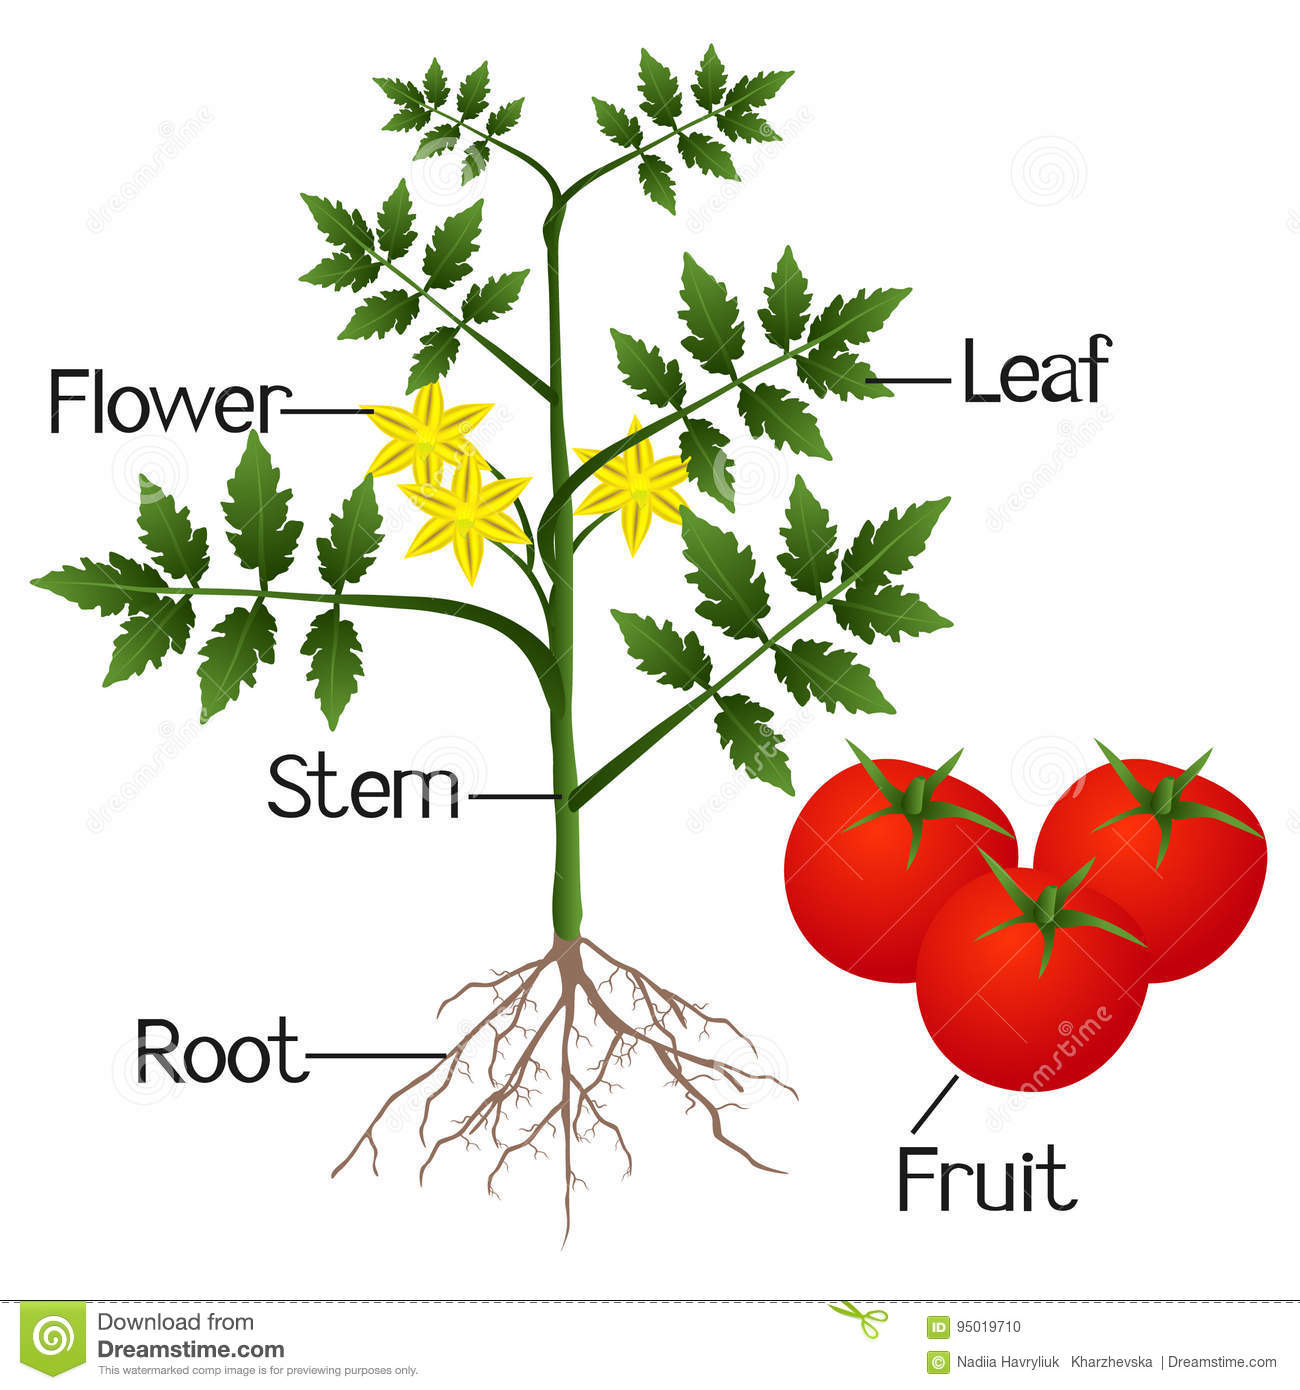 Illustration Showing The Parts Of A Tomato Plant. Stock Vector ...